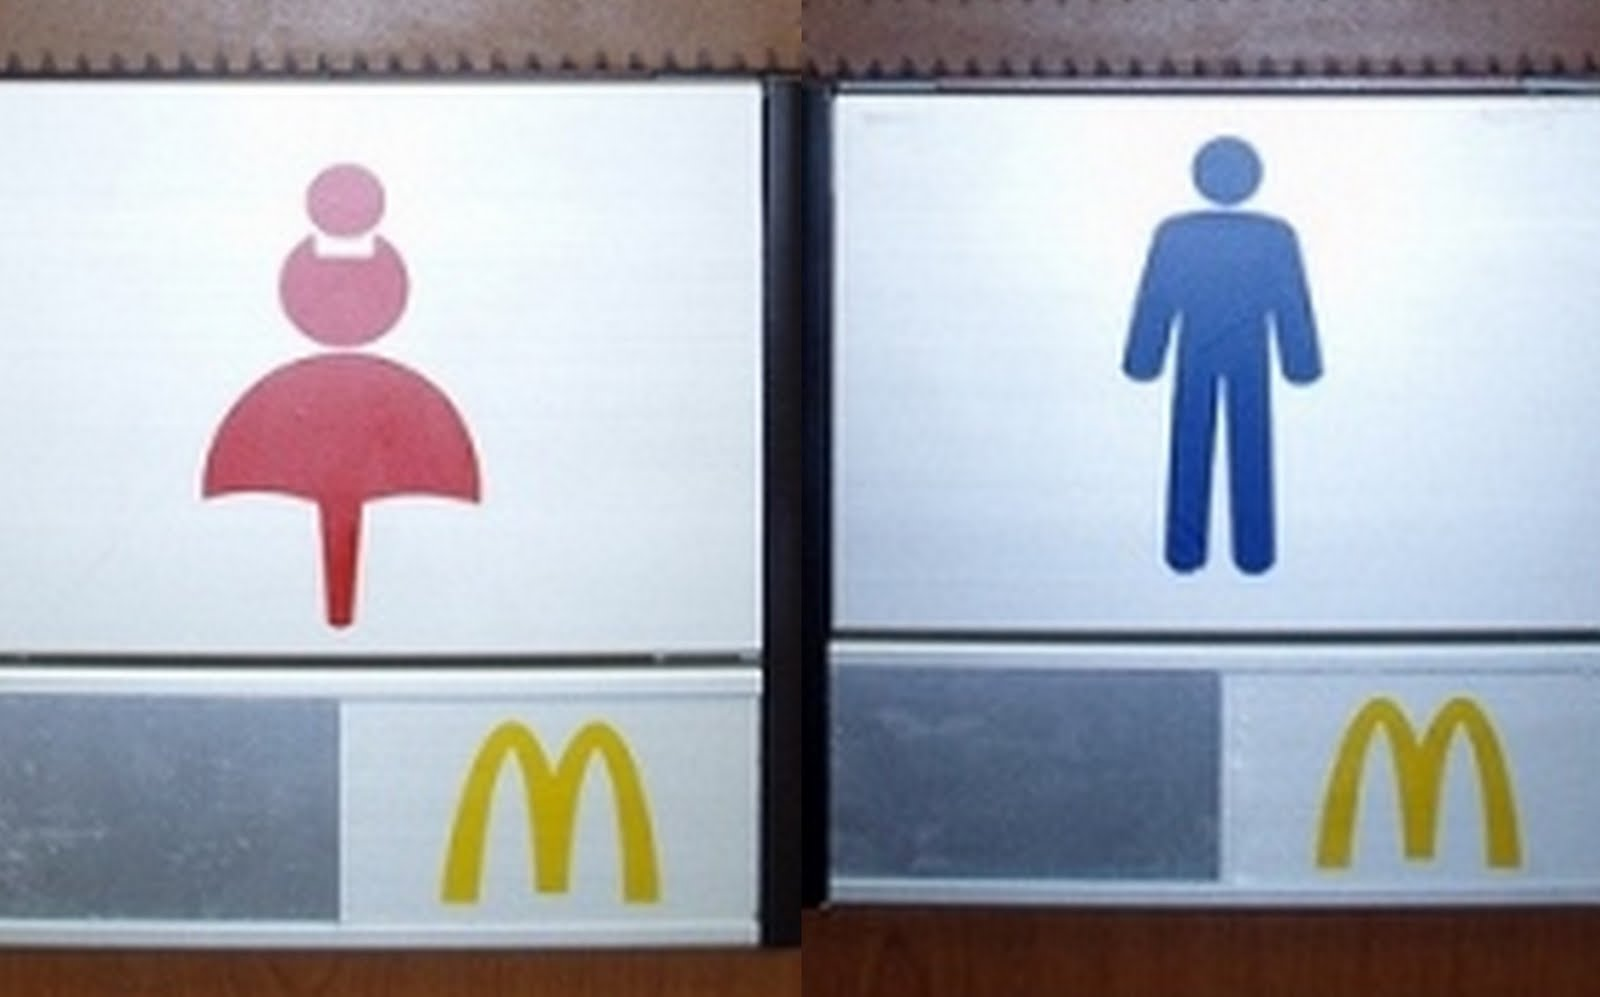 Bathroom Signs Ireland go where? sex, gender, and toilets - sociological images